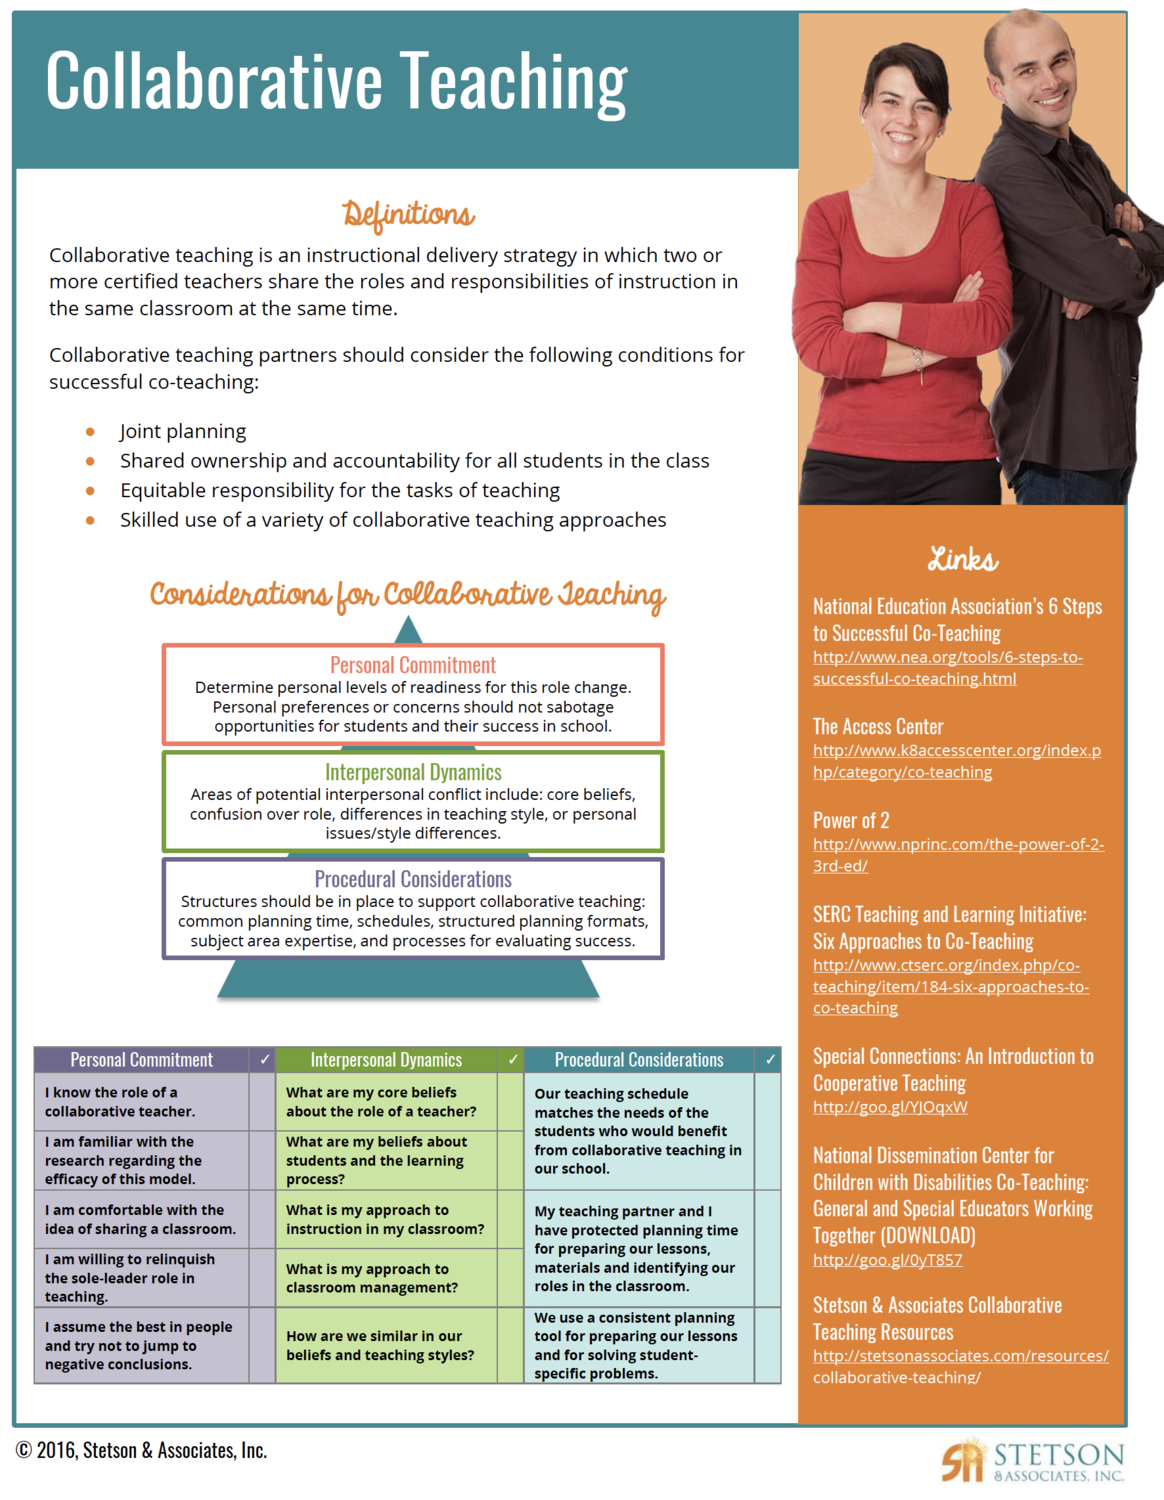 Collaborative Teaching Information Card